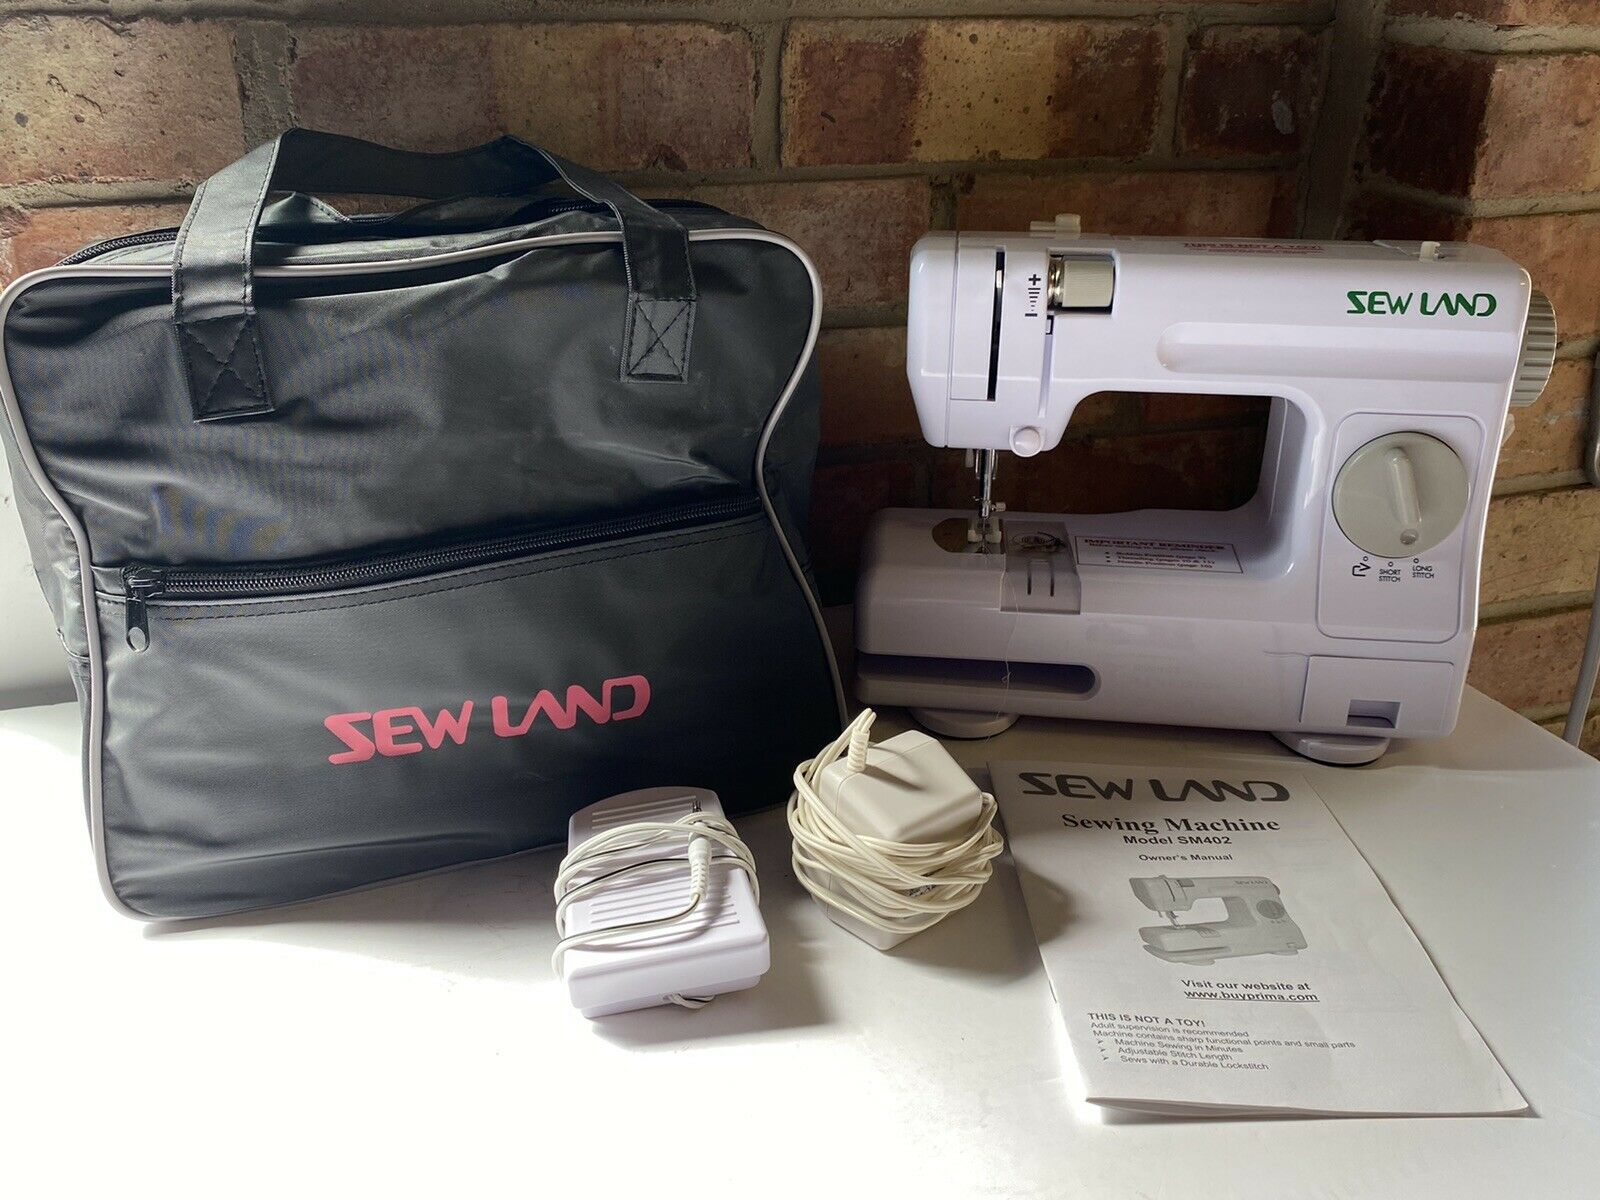 Sew Land Sewing Machine Model SM402 Compact Portable Sewing Machine w Carry Bag